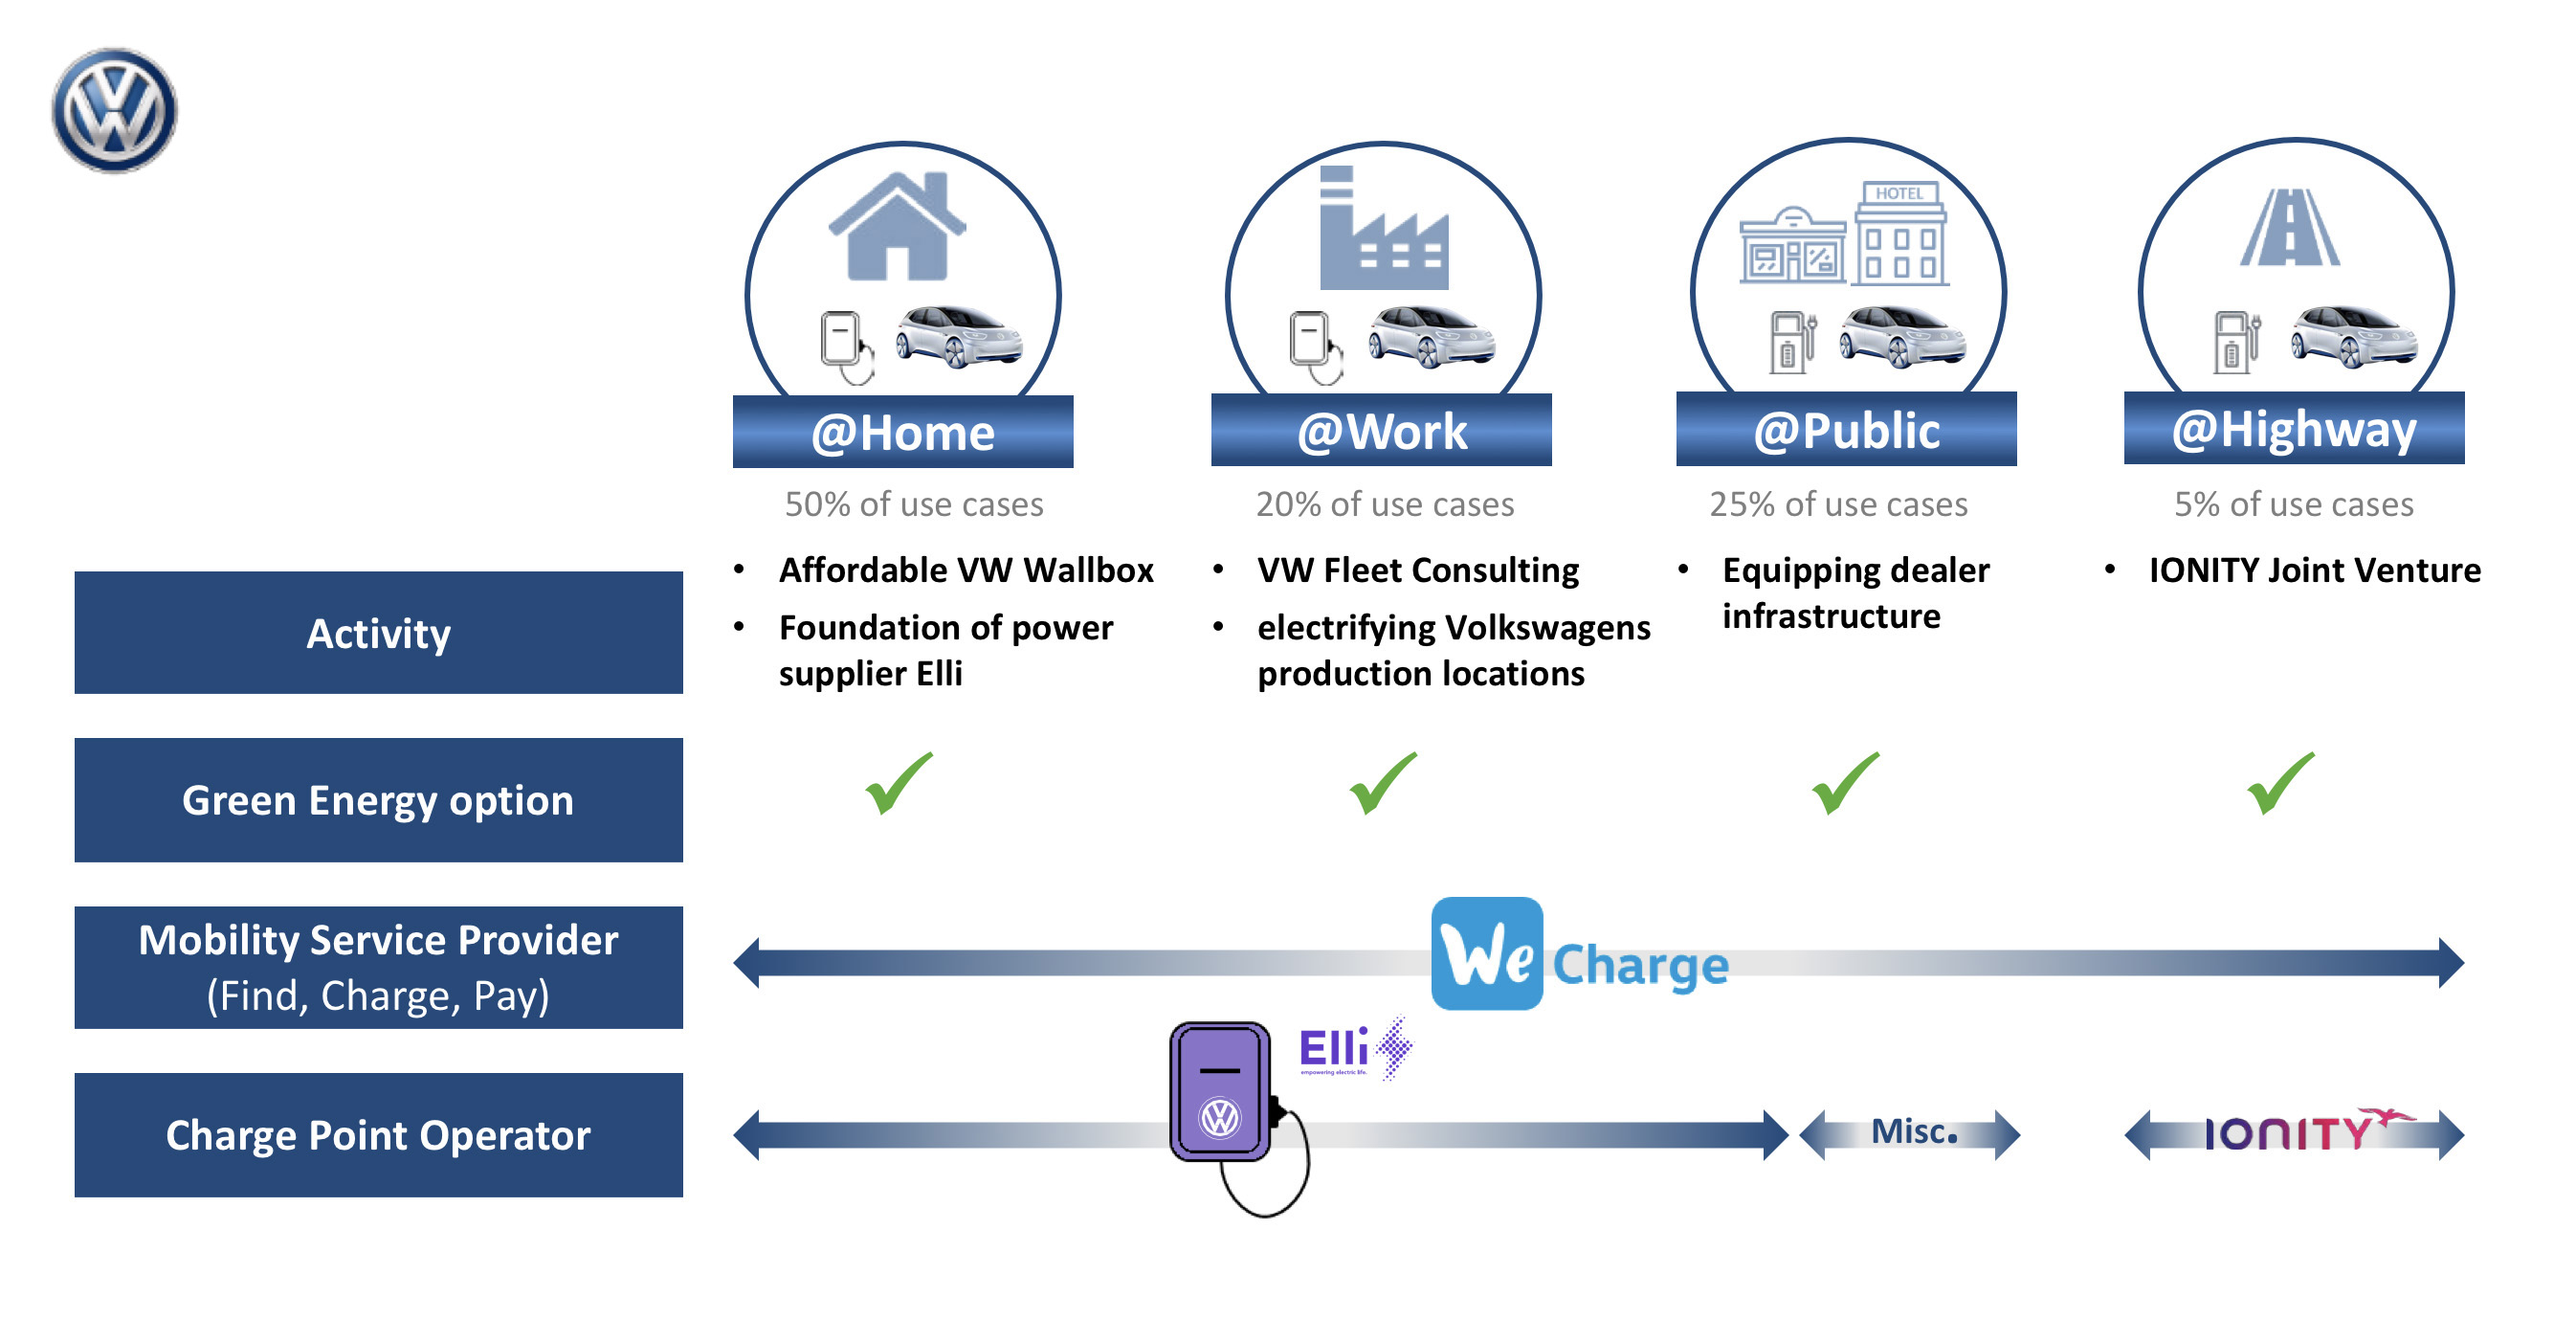 volkswagen-charging-use-cases